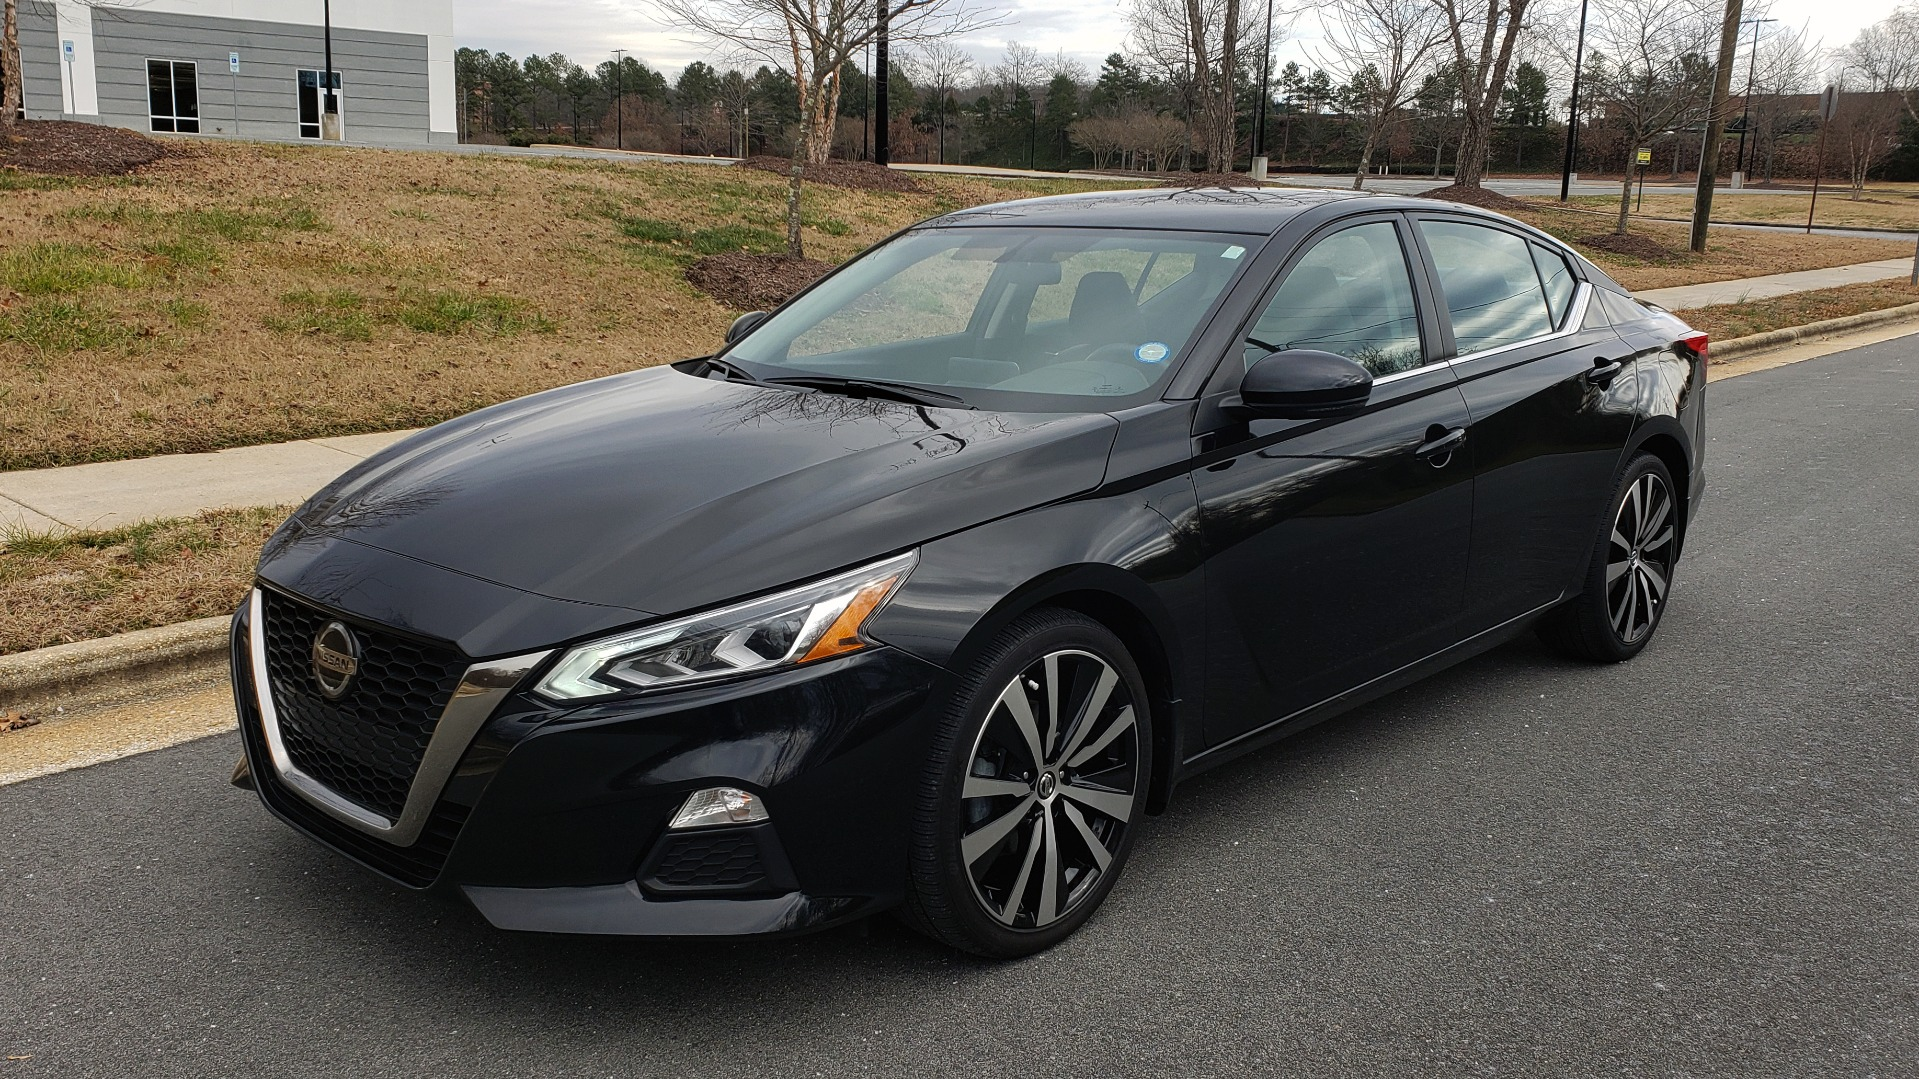 Used 2019 Nissan ALTIMA 2.5 SR PREMIUM / 2.5L / CVT TRANS / HTD STS / SUNROOF / REARVIEW for sale $19,995 at Formula Imports in Charlotte NC 28227 1